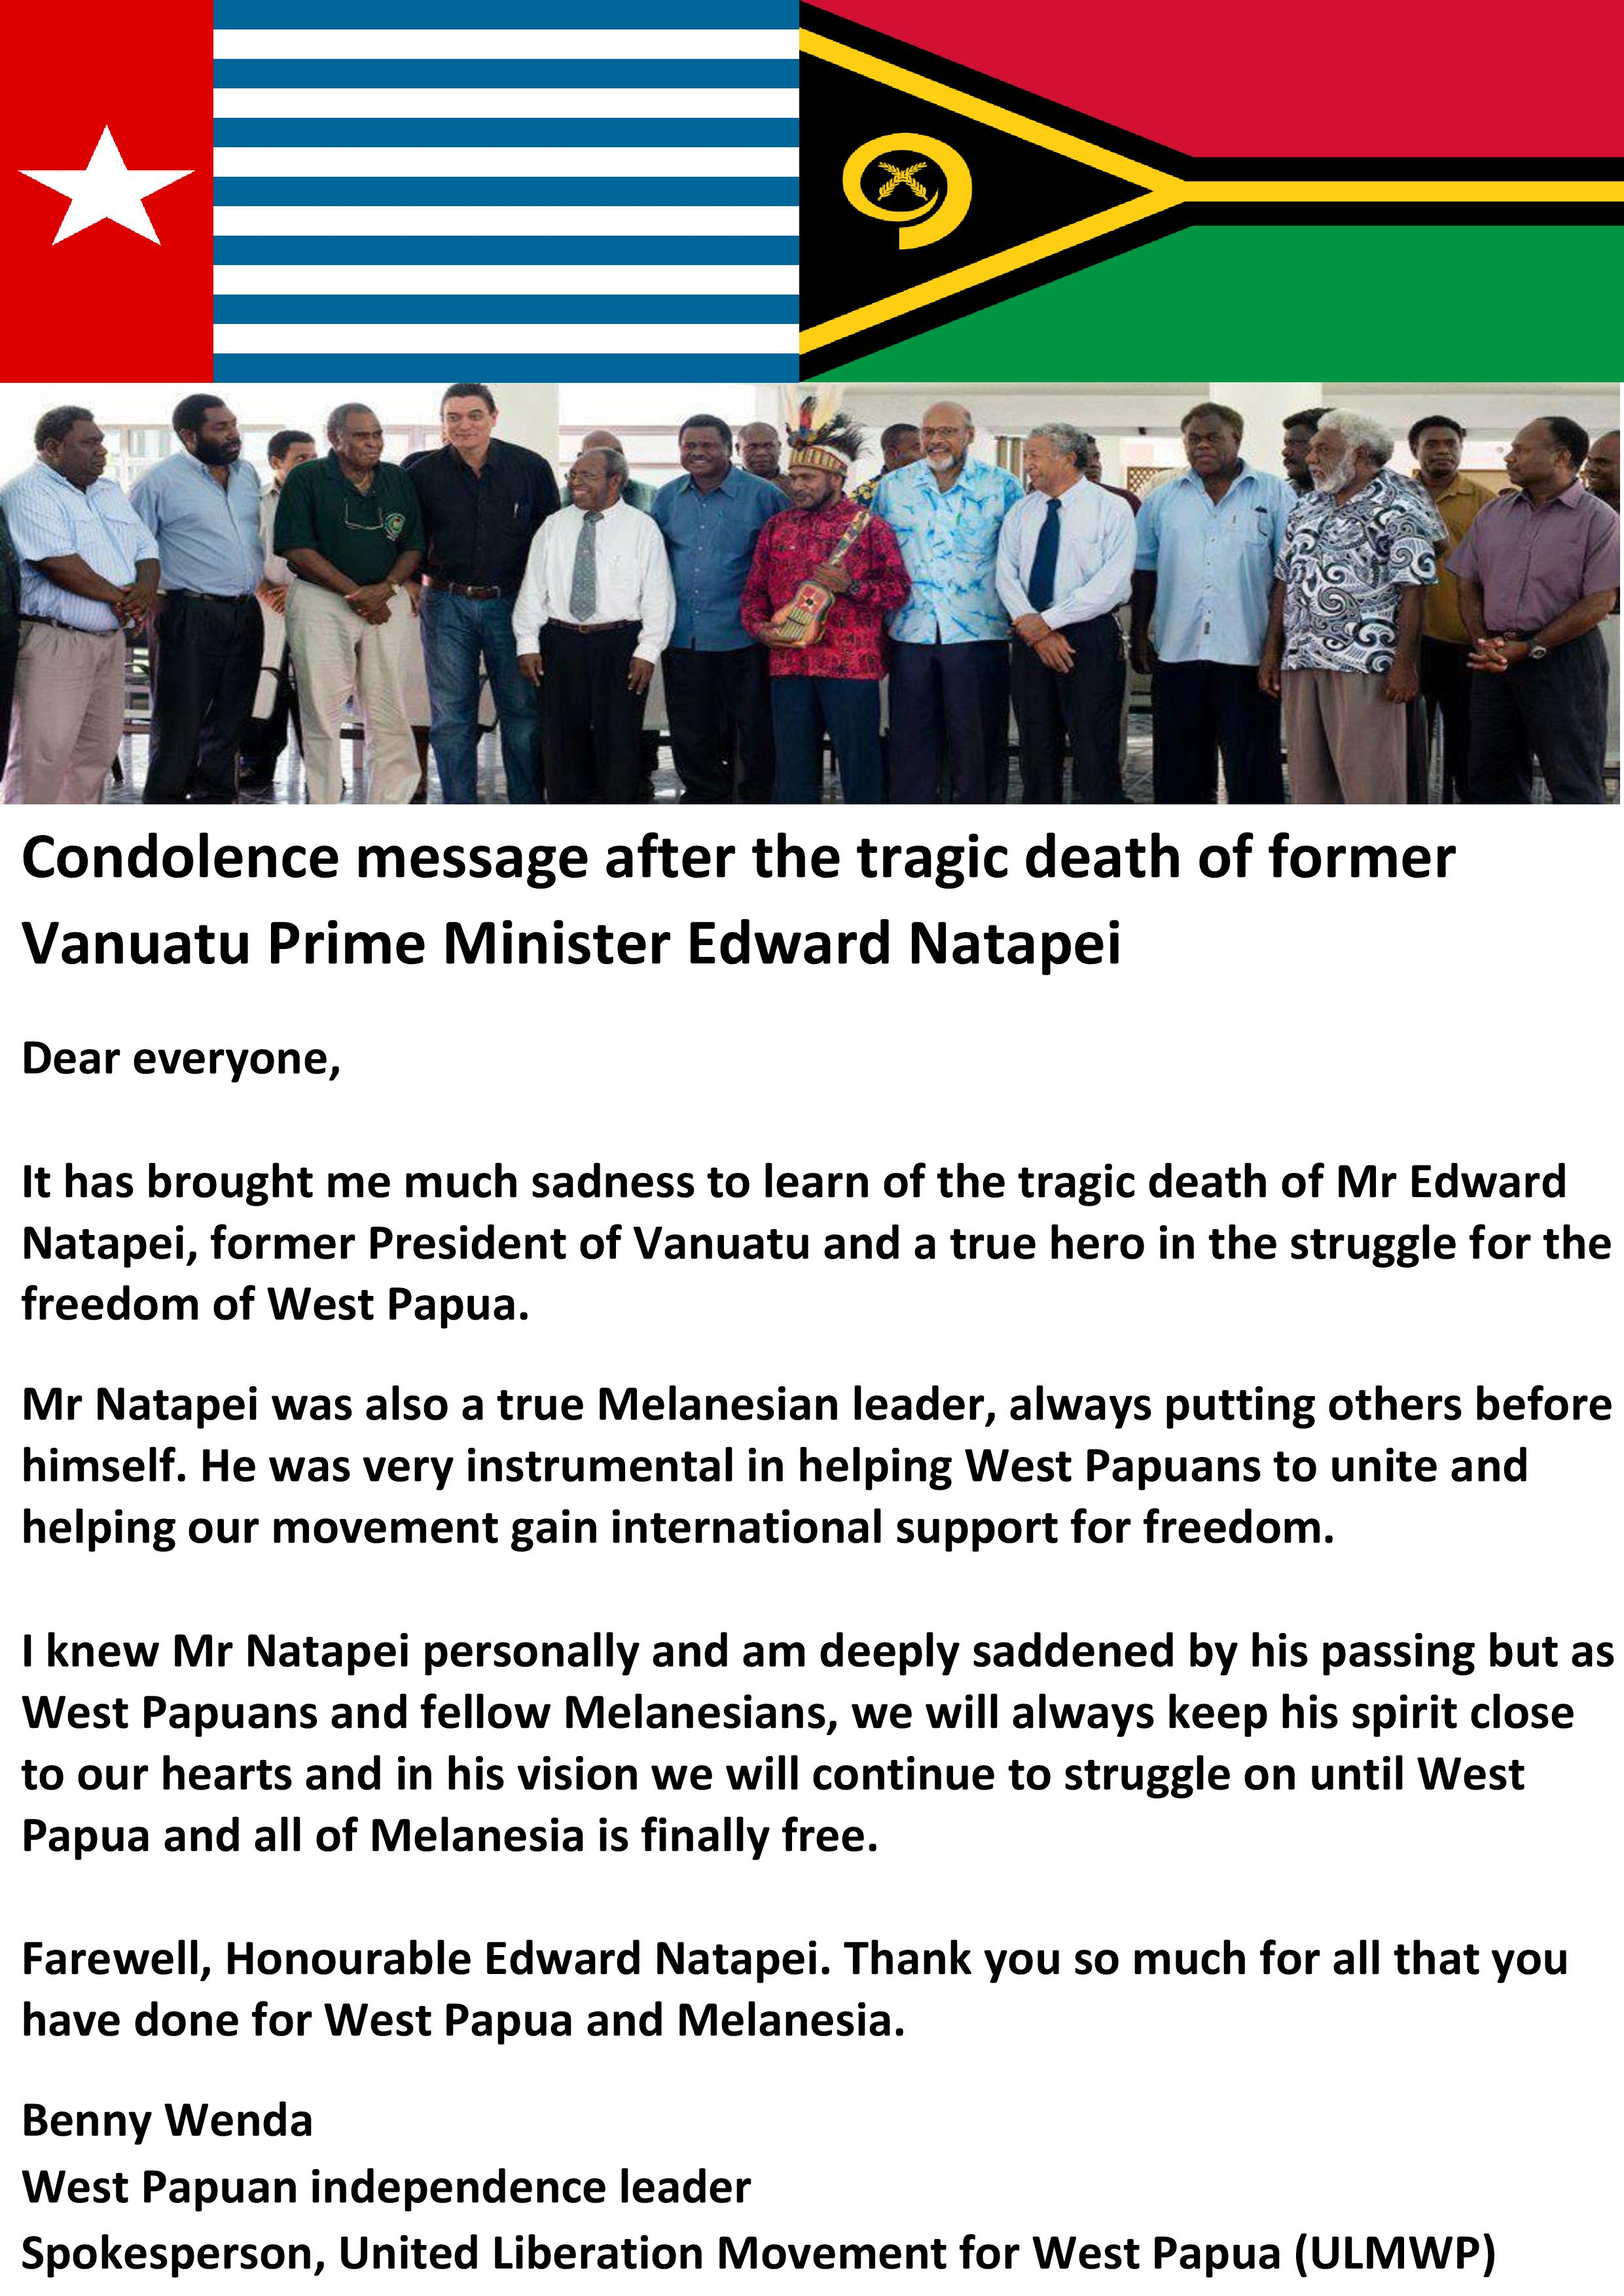 Benny Wenda letter of condolence after death of Edward Natapei-page-001 (1)